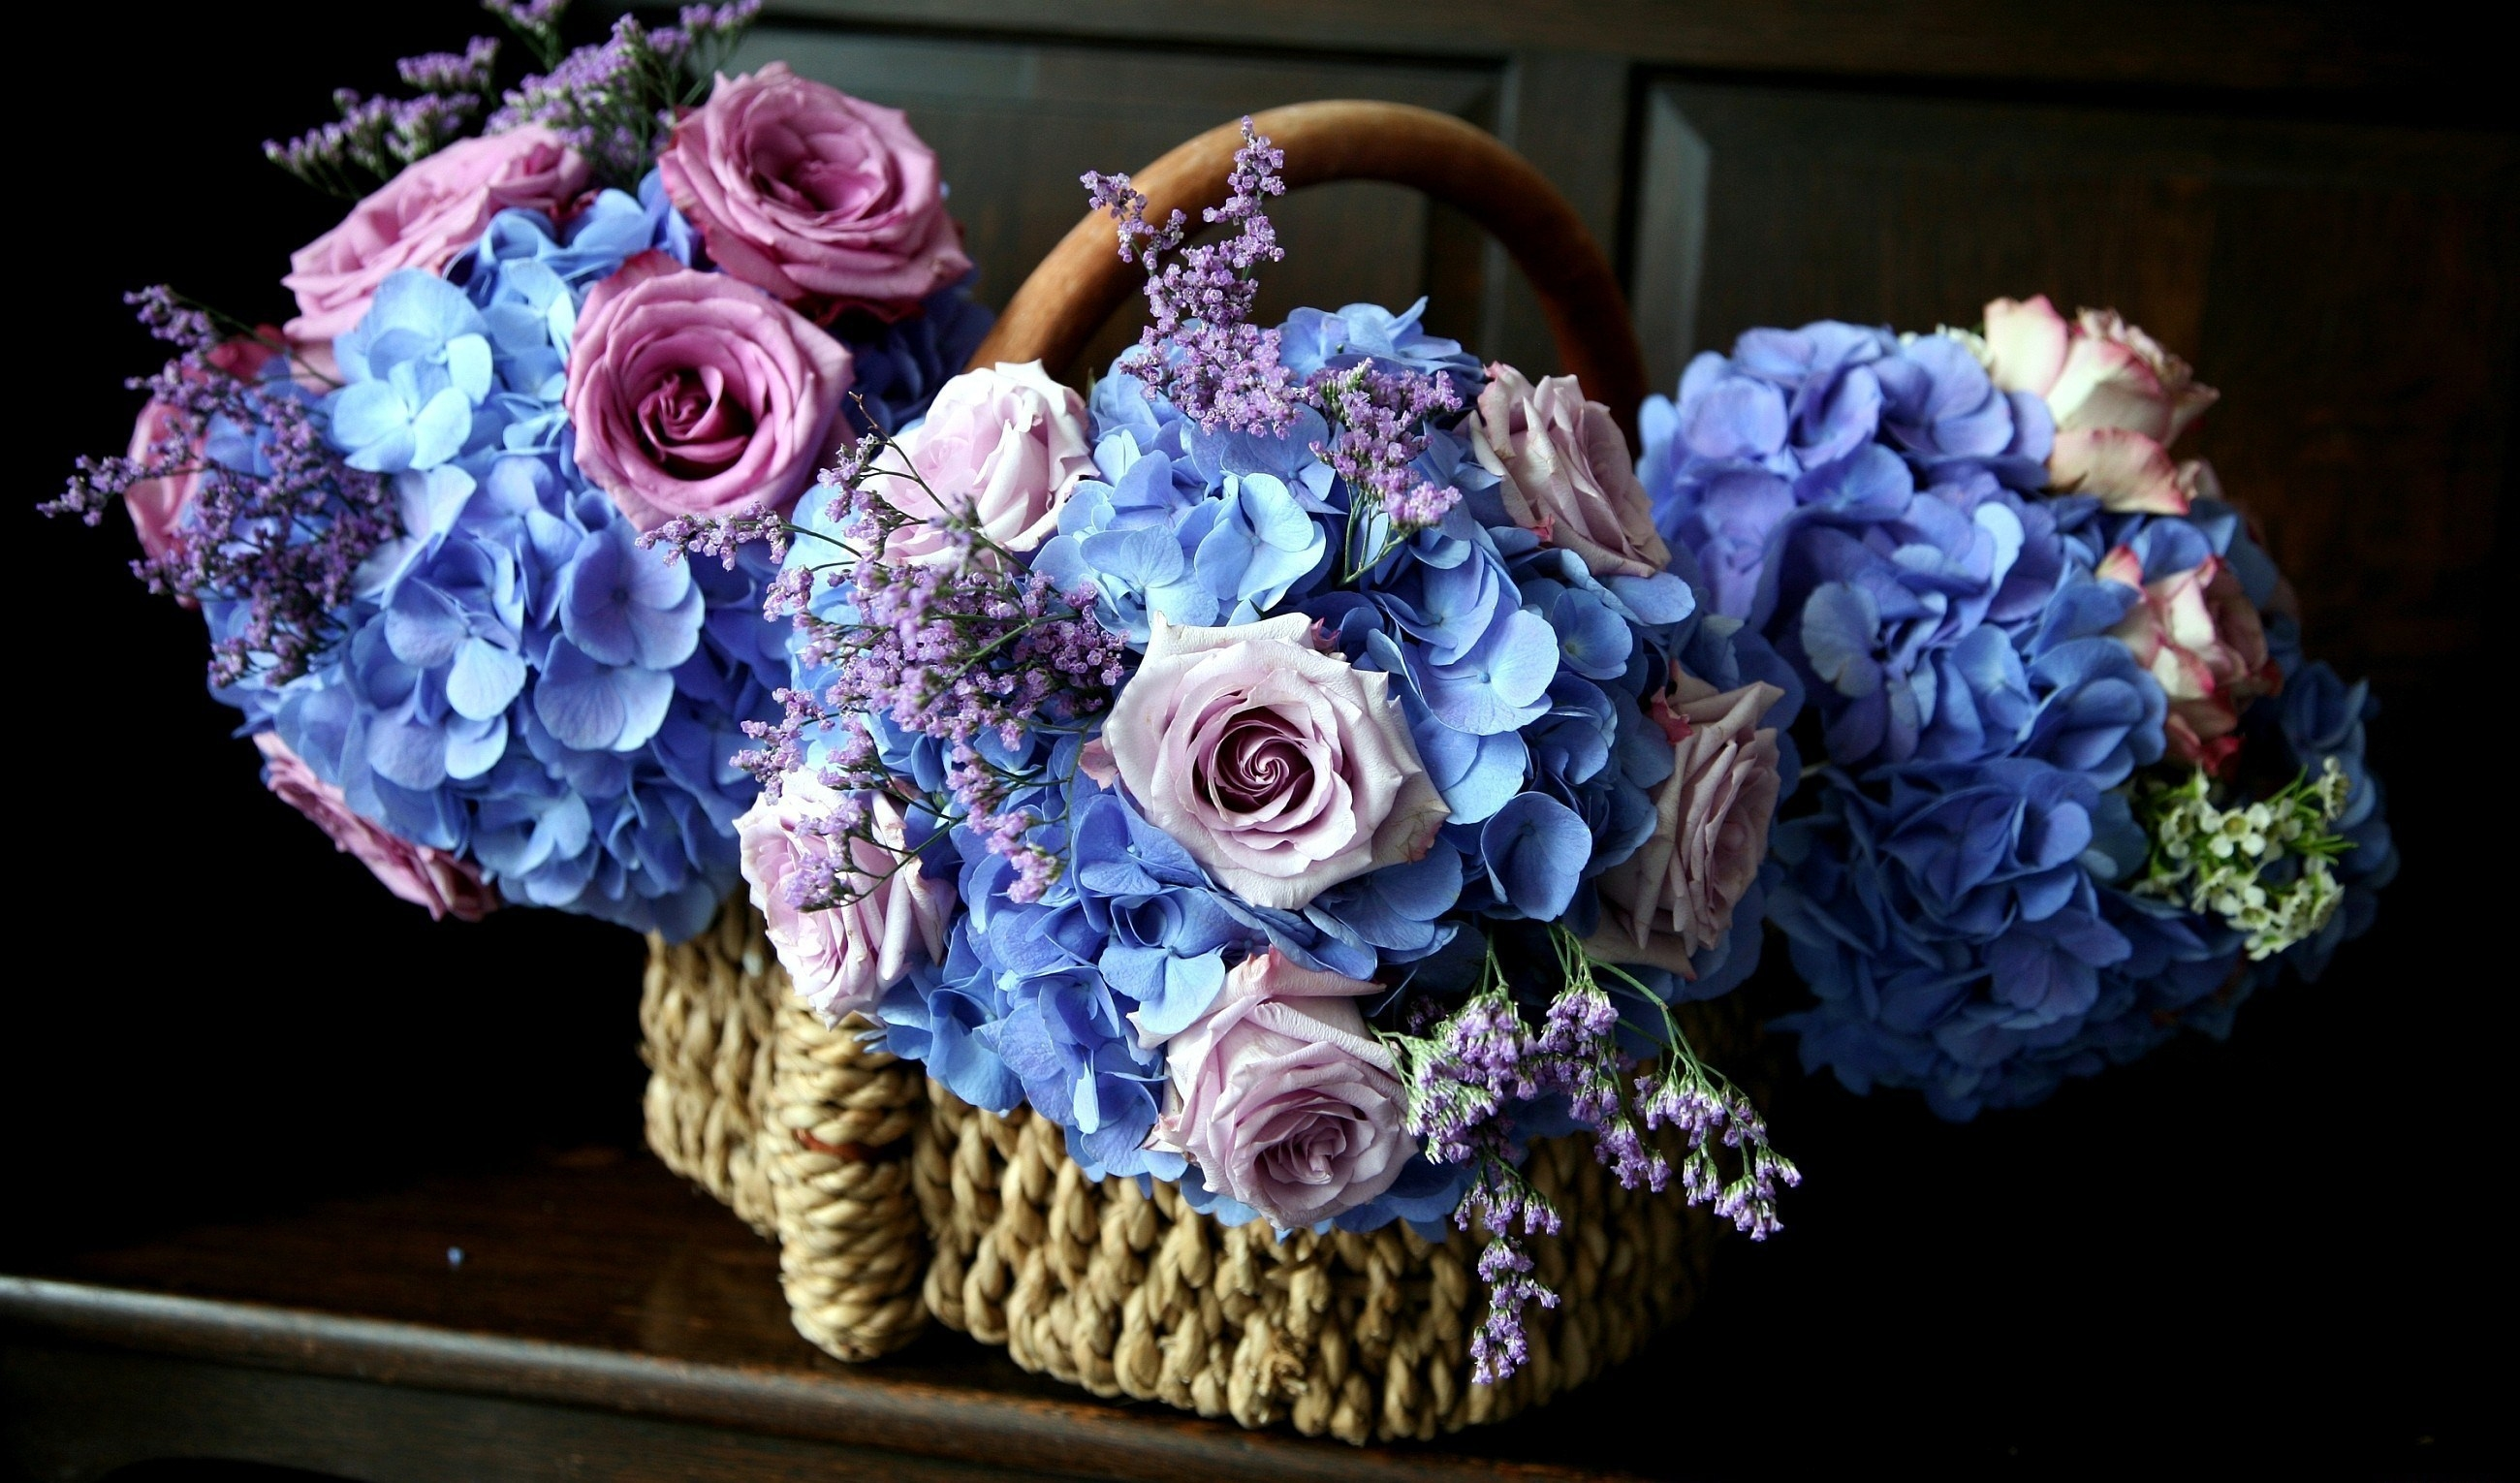 95762 download wallpaper Flowers, Roses, Bouquets, Beauty, Basket, Hydrangea screensavers and pictures for free